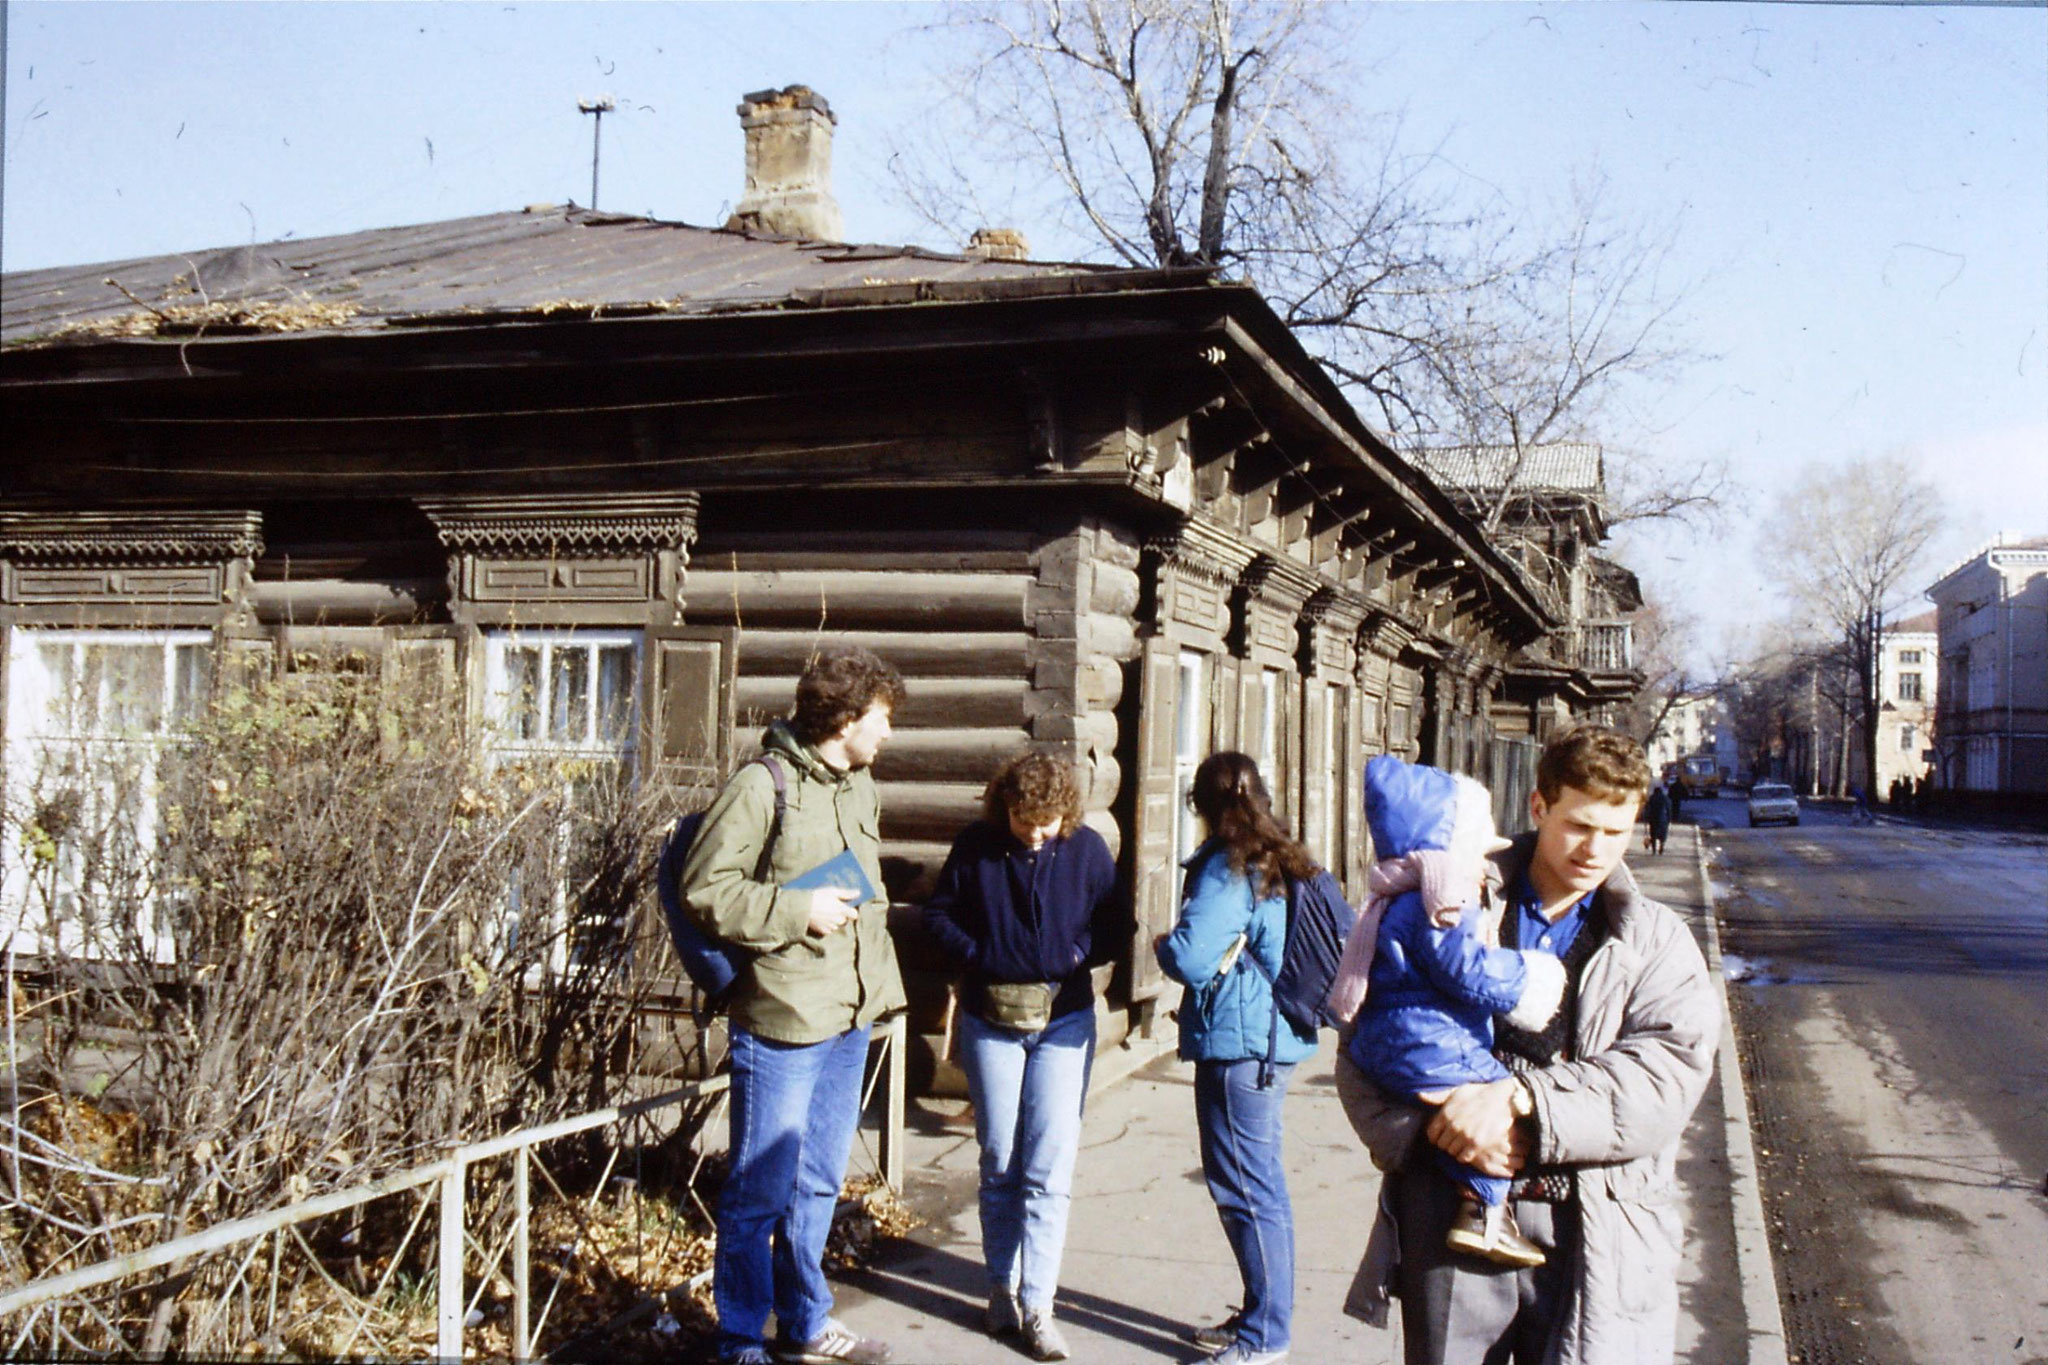 24/10/1988: 1: Irkutsk, wooden house